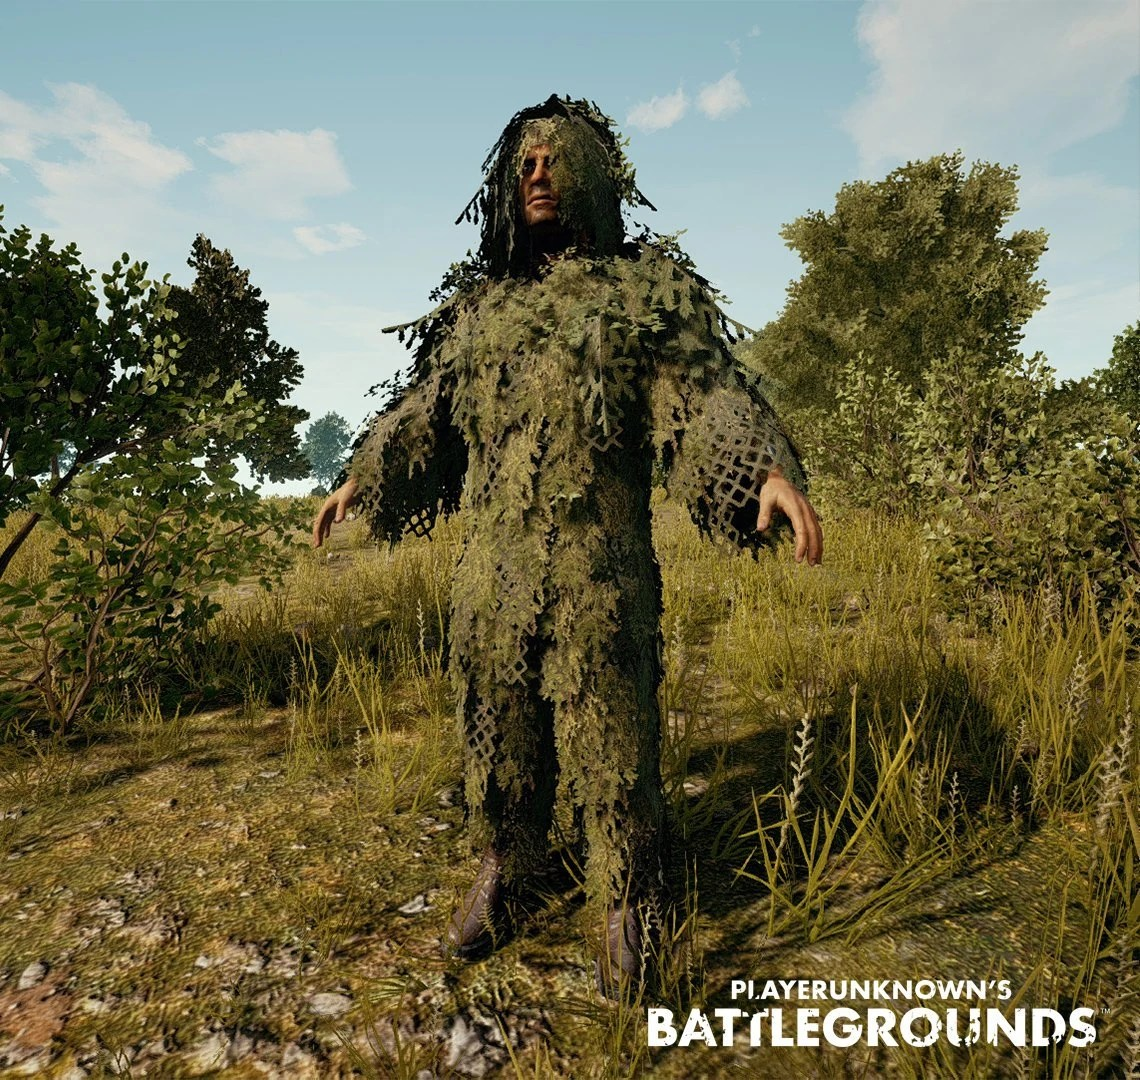 Black Camouflage Wallpaper One Piece Suits Playerunknown S Battlegrounds Wiki